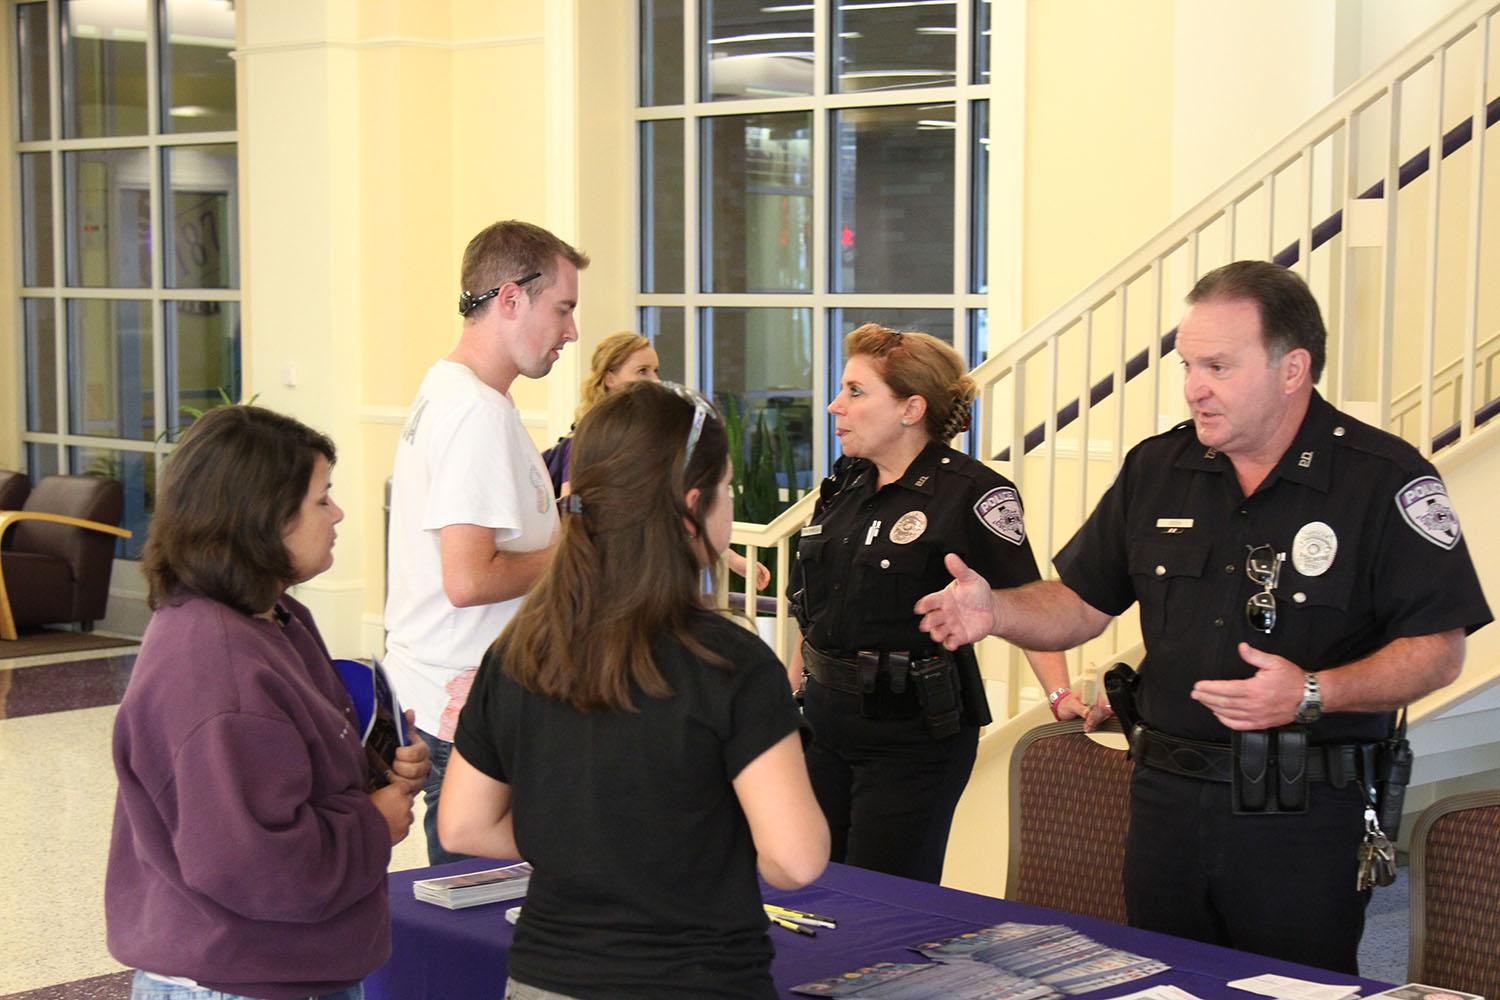 TCU Police Officers Pam Christian (left) and George Steen (right) inform students about crime prevention on campus.